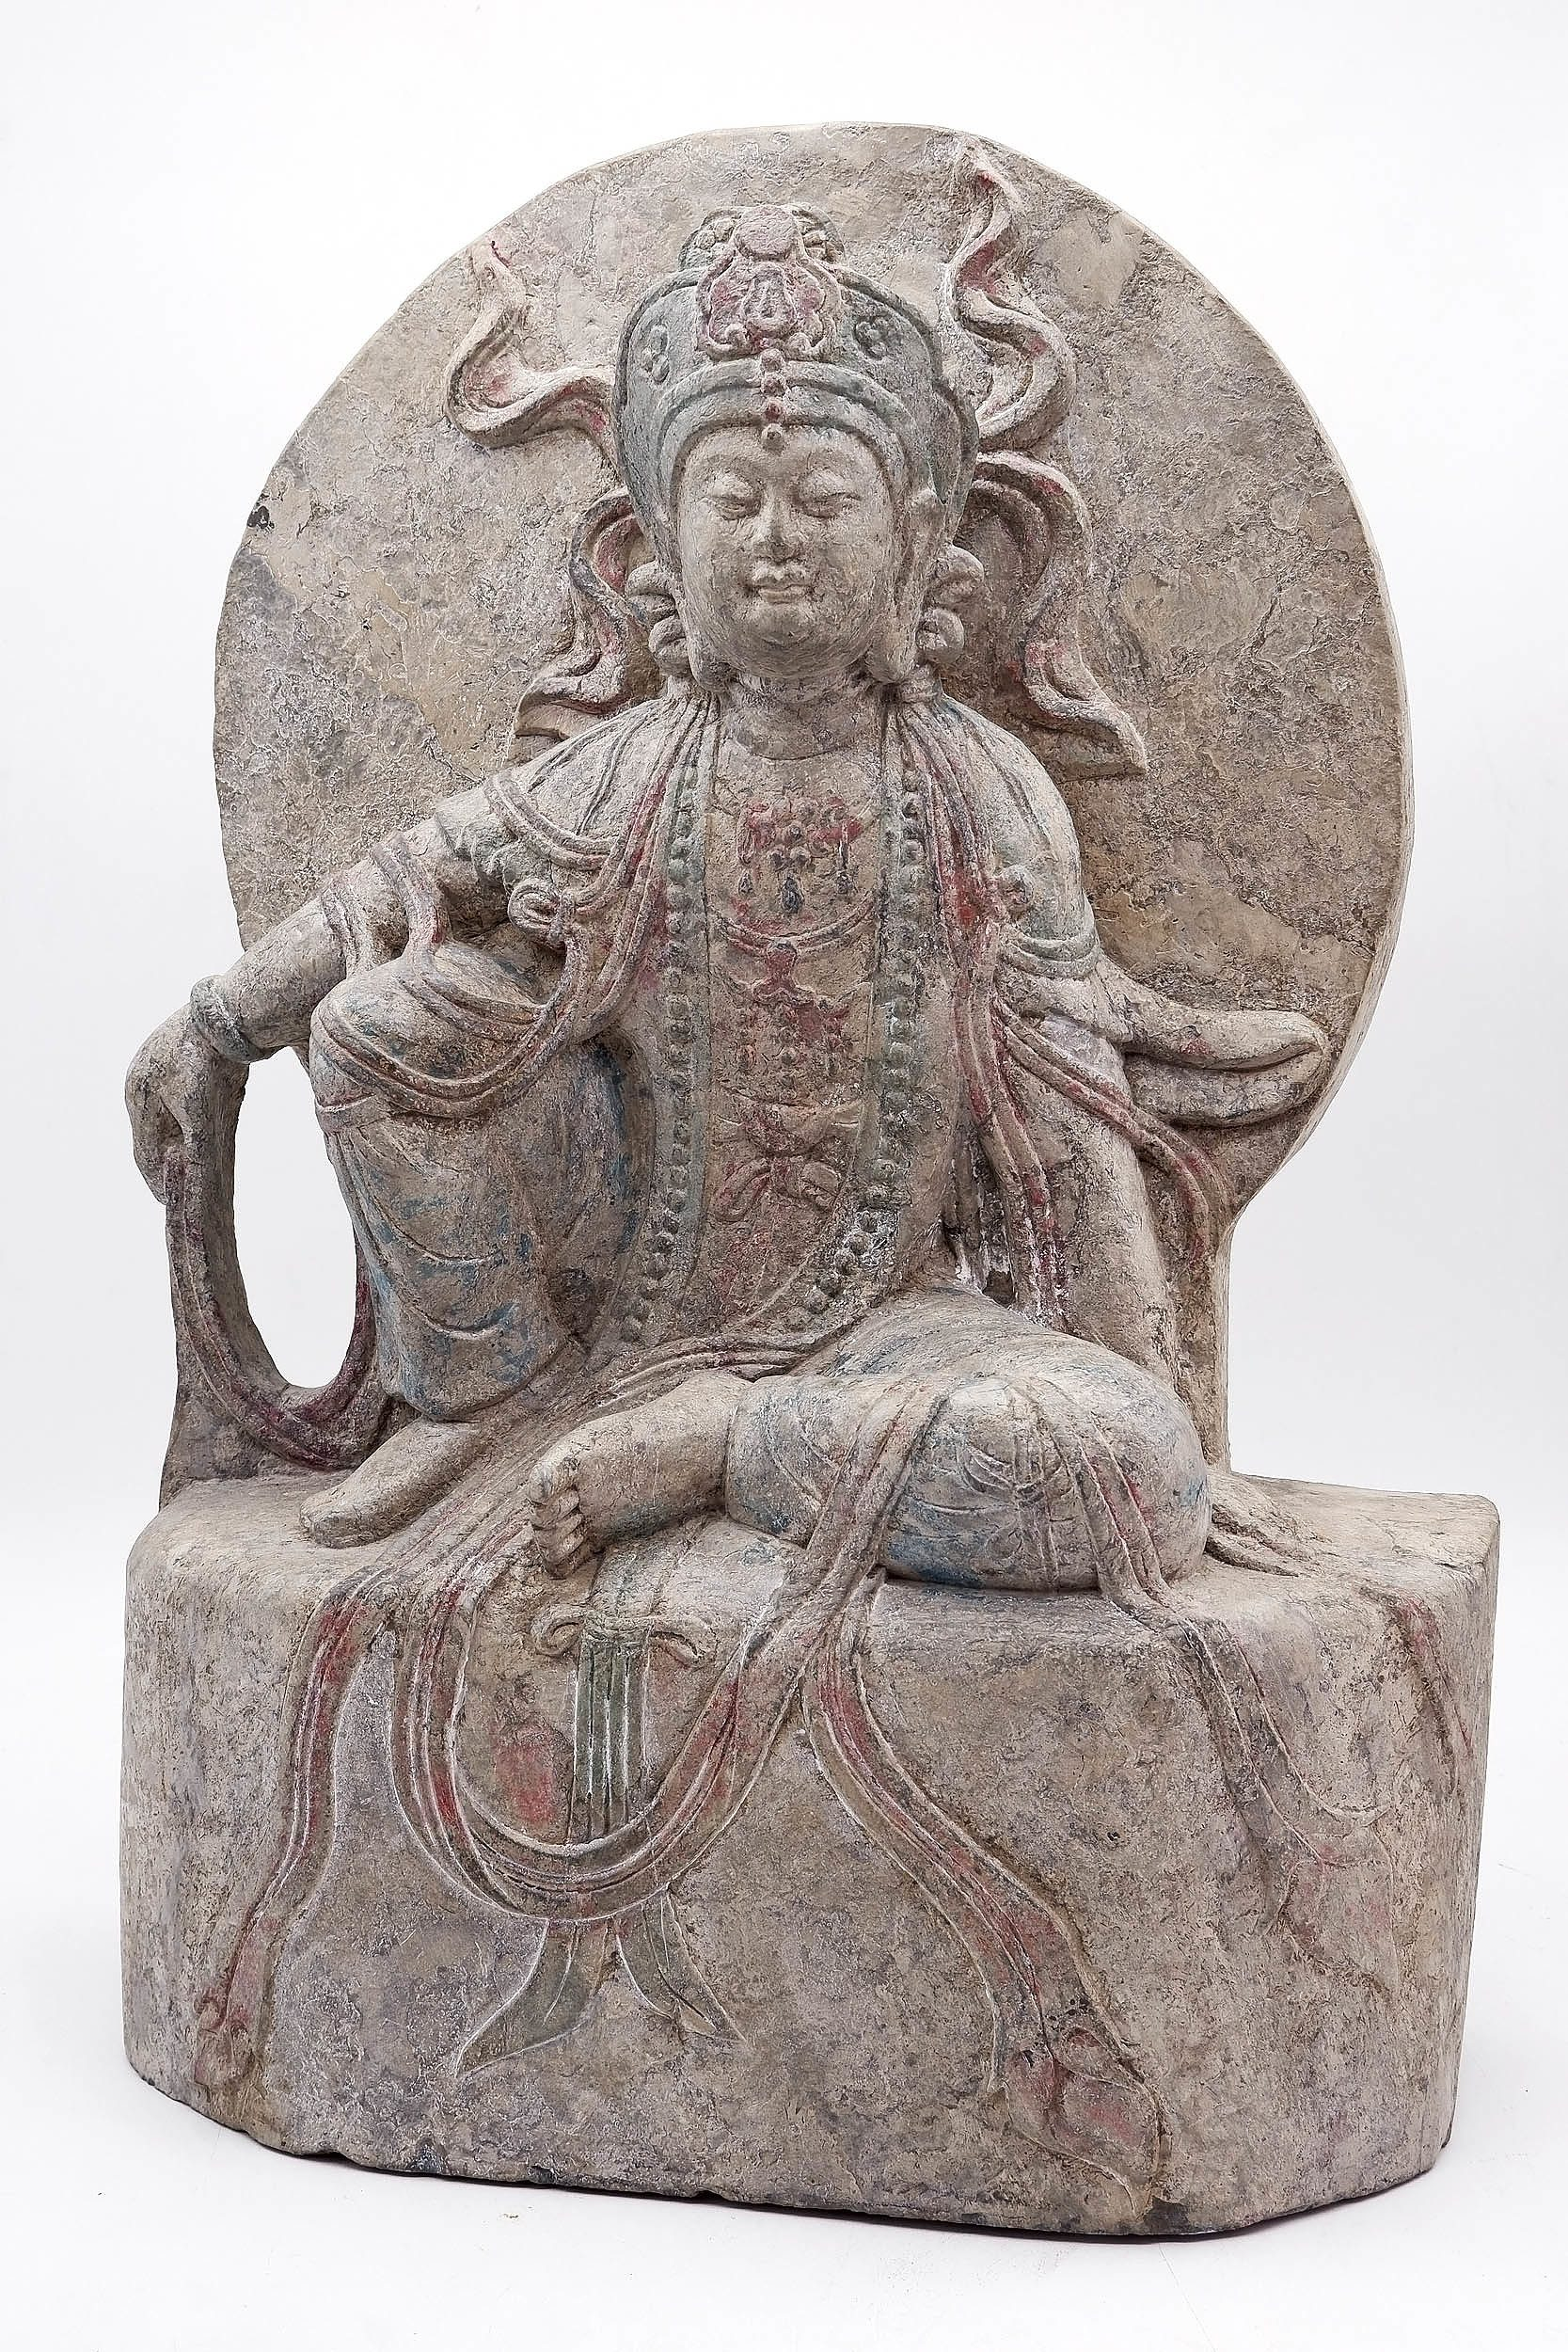 'Chinese Carved Stone Bodhisattva, 20th Century or Earlier'